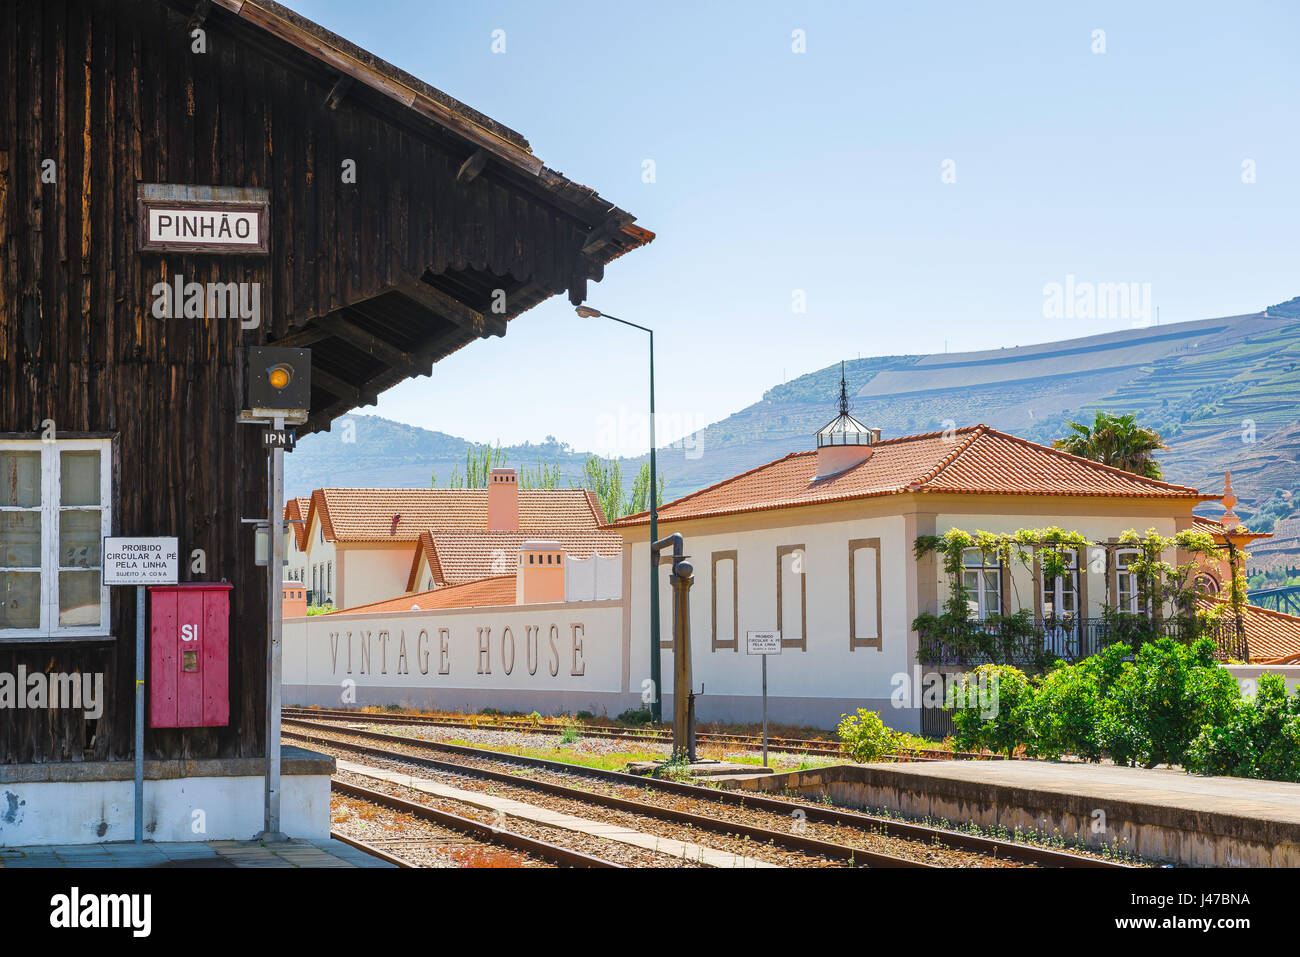 Pinhao Portugal train station, train station platform and adjacent vintage house in the Douro Valley port wine town - Stock Image